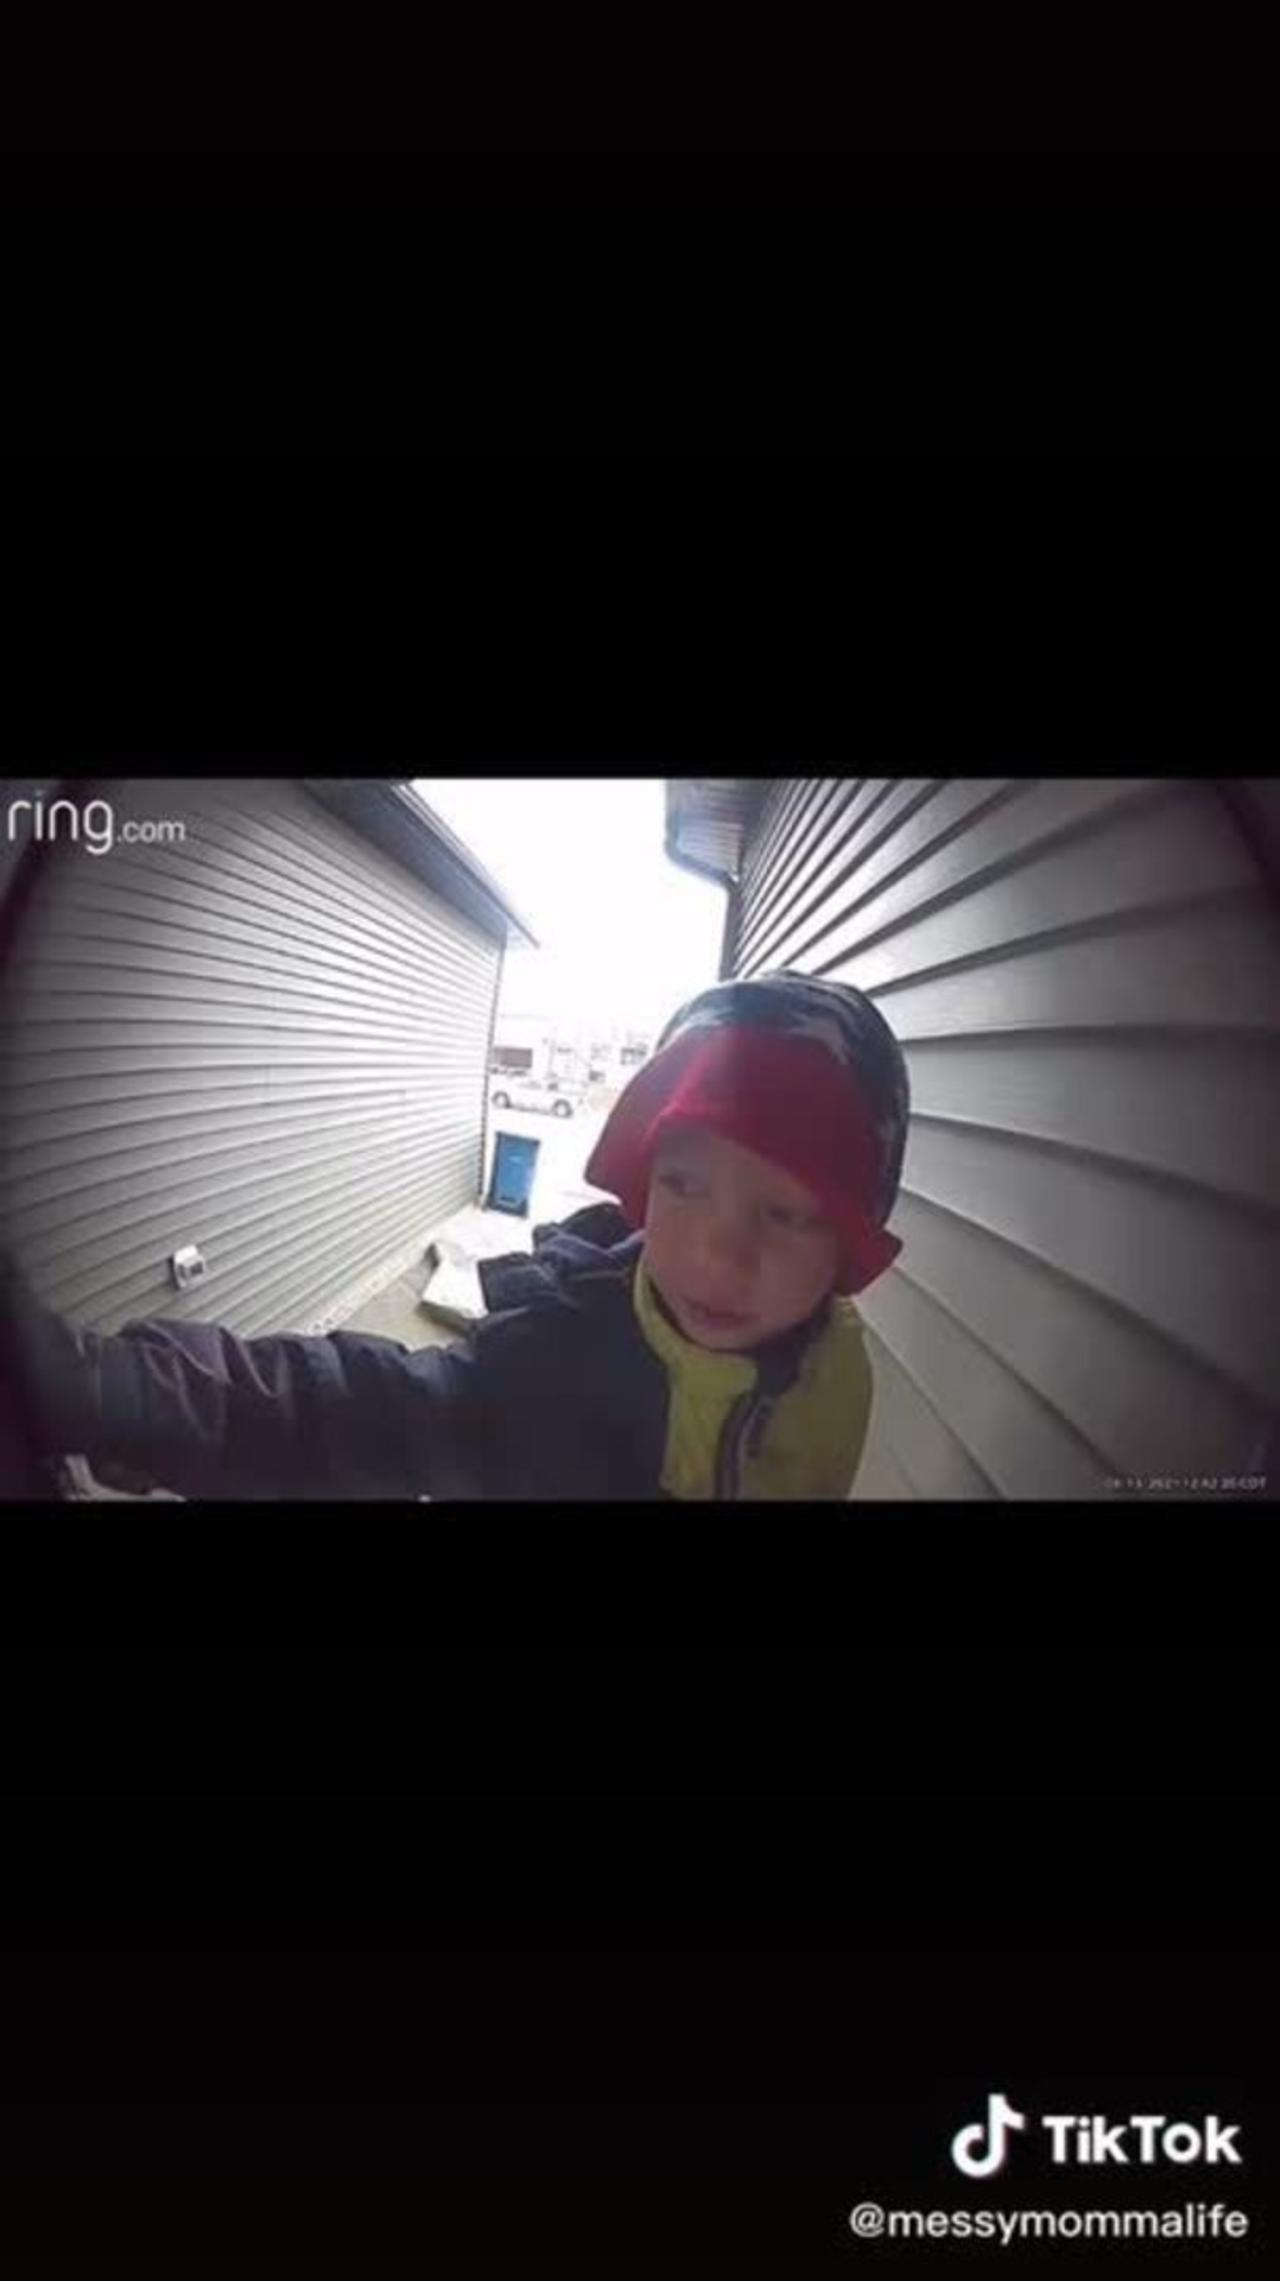 Little Boy Calls Father On Security Camera And Asks About Fast Food